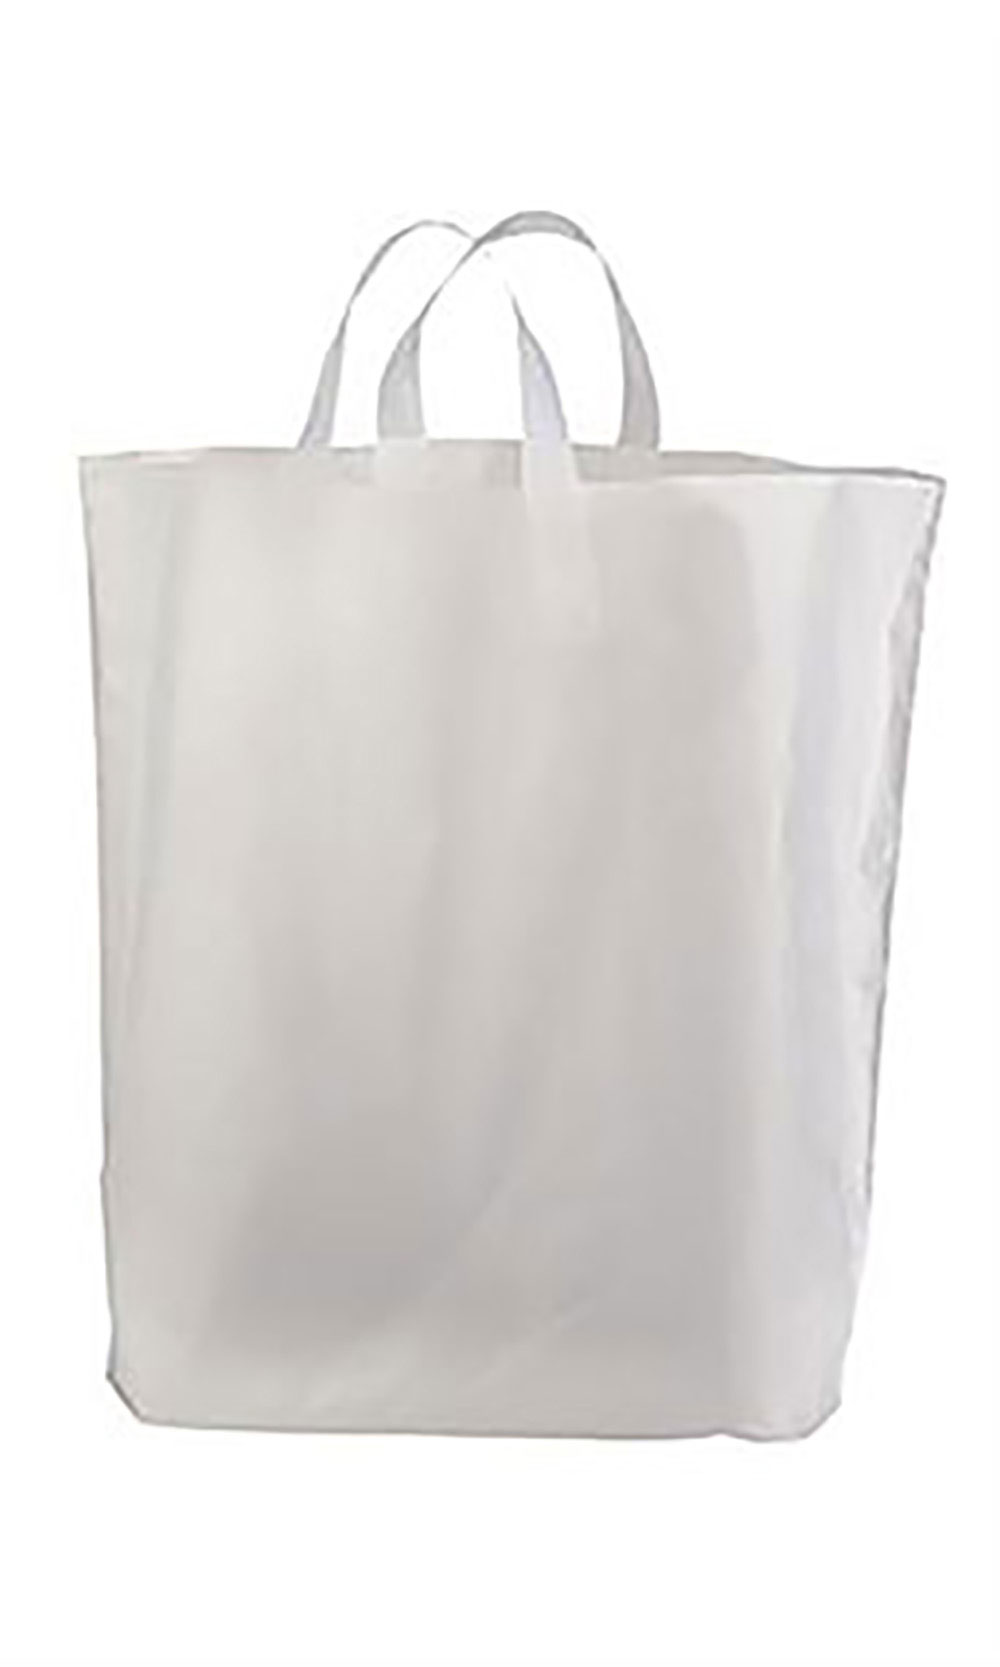 "Recycled Clear Frosted Plastic Shopping Bags (16"" x 15"" x ..."